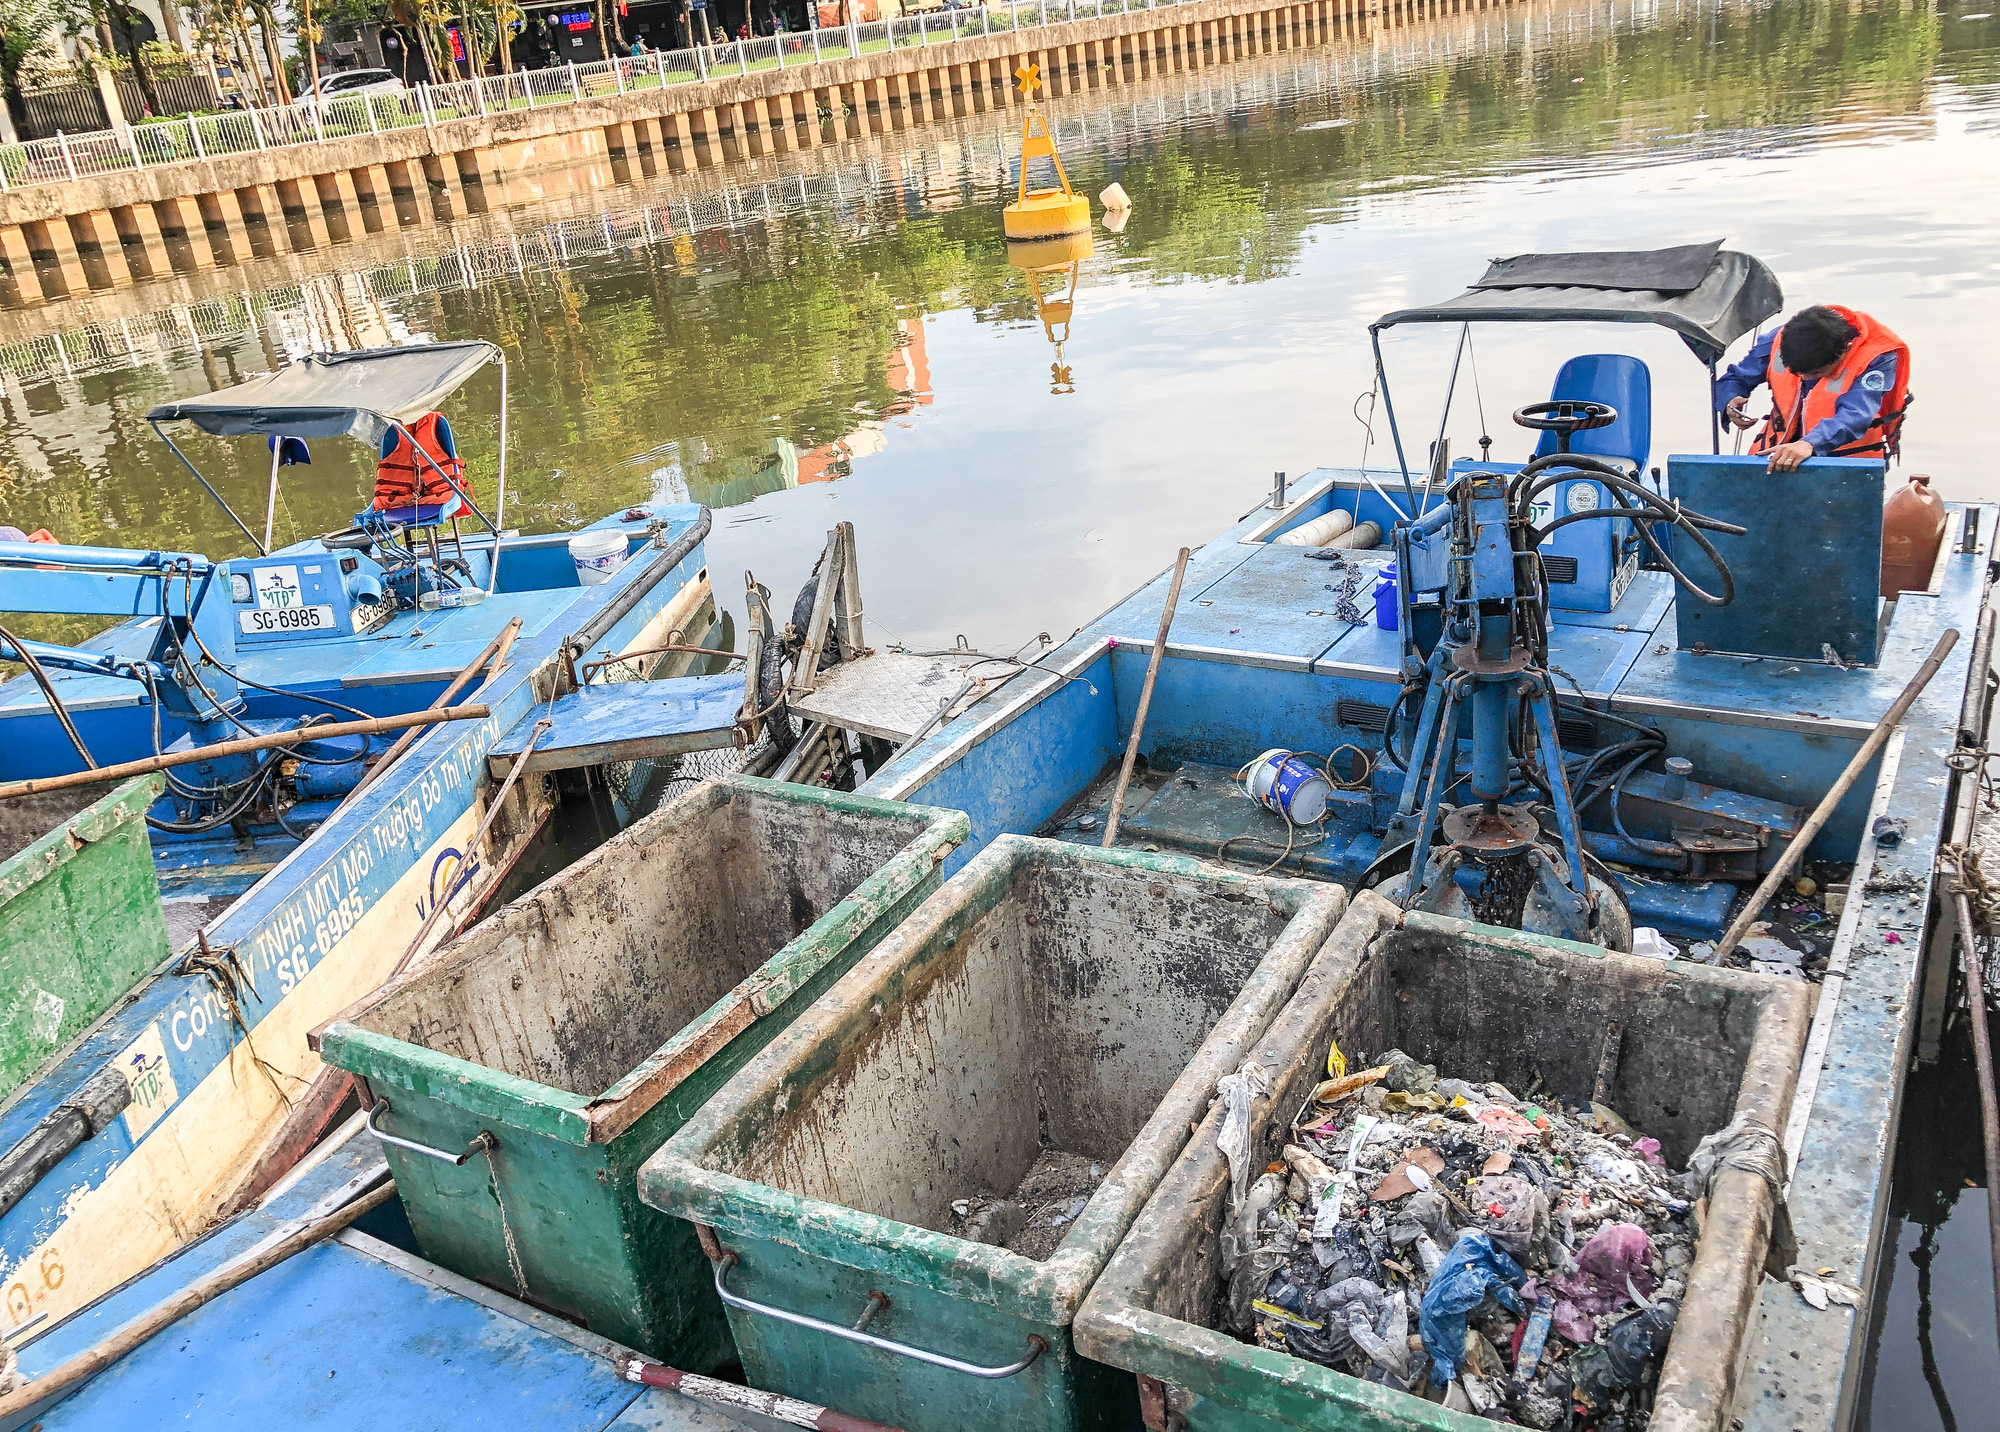 Dead fish is collected in Nhieu Loc - Thi Nghe Canal in Ho Chi Minh City, April 4, 2021. Photo: Chau Tuan / Tuoi Tre